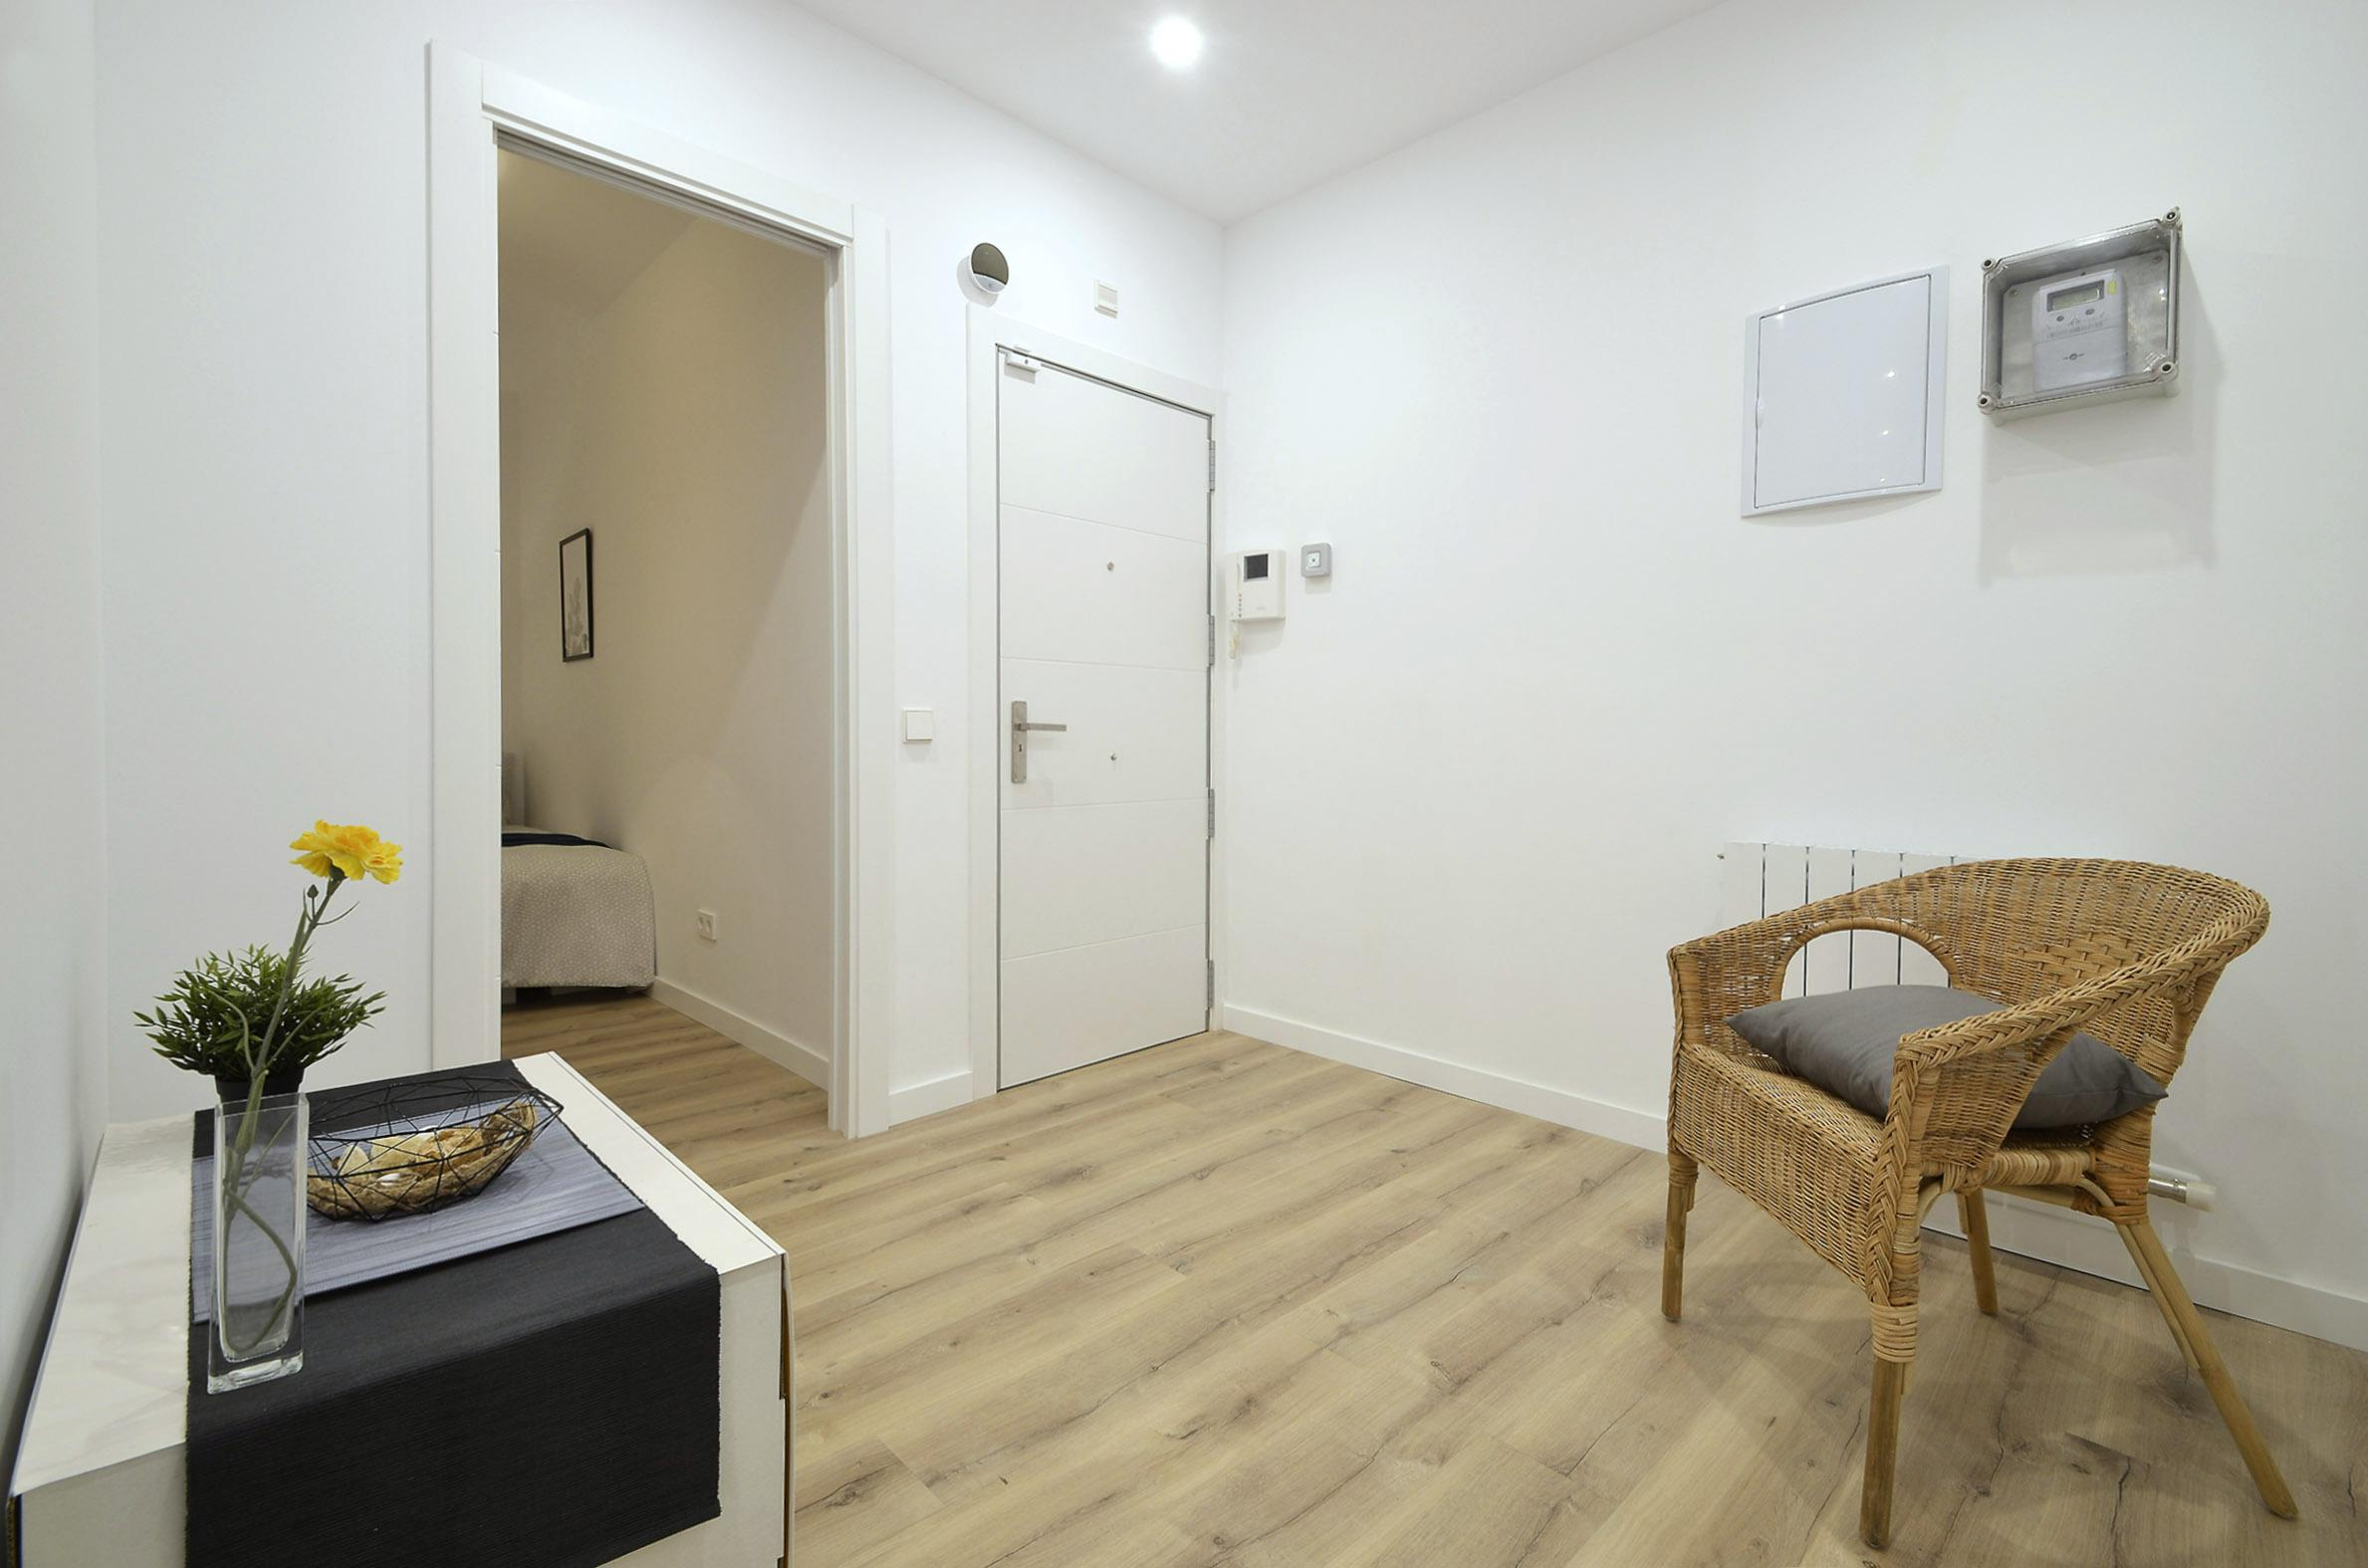 245687 Flat for sale in Eixample, Fort Pienc 10